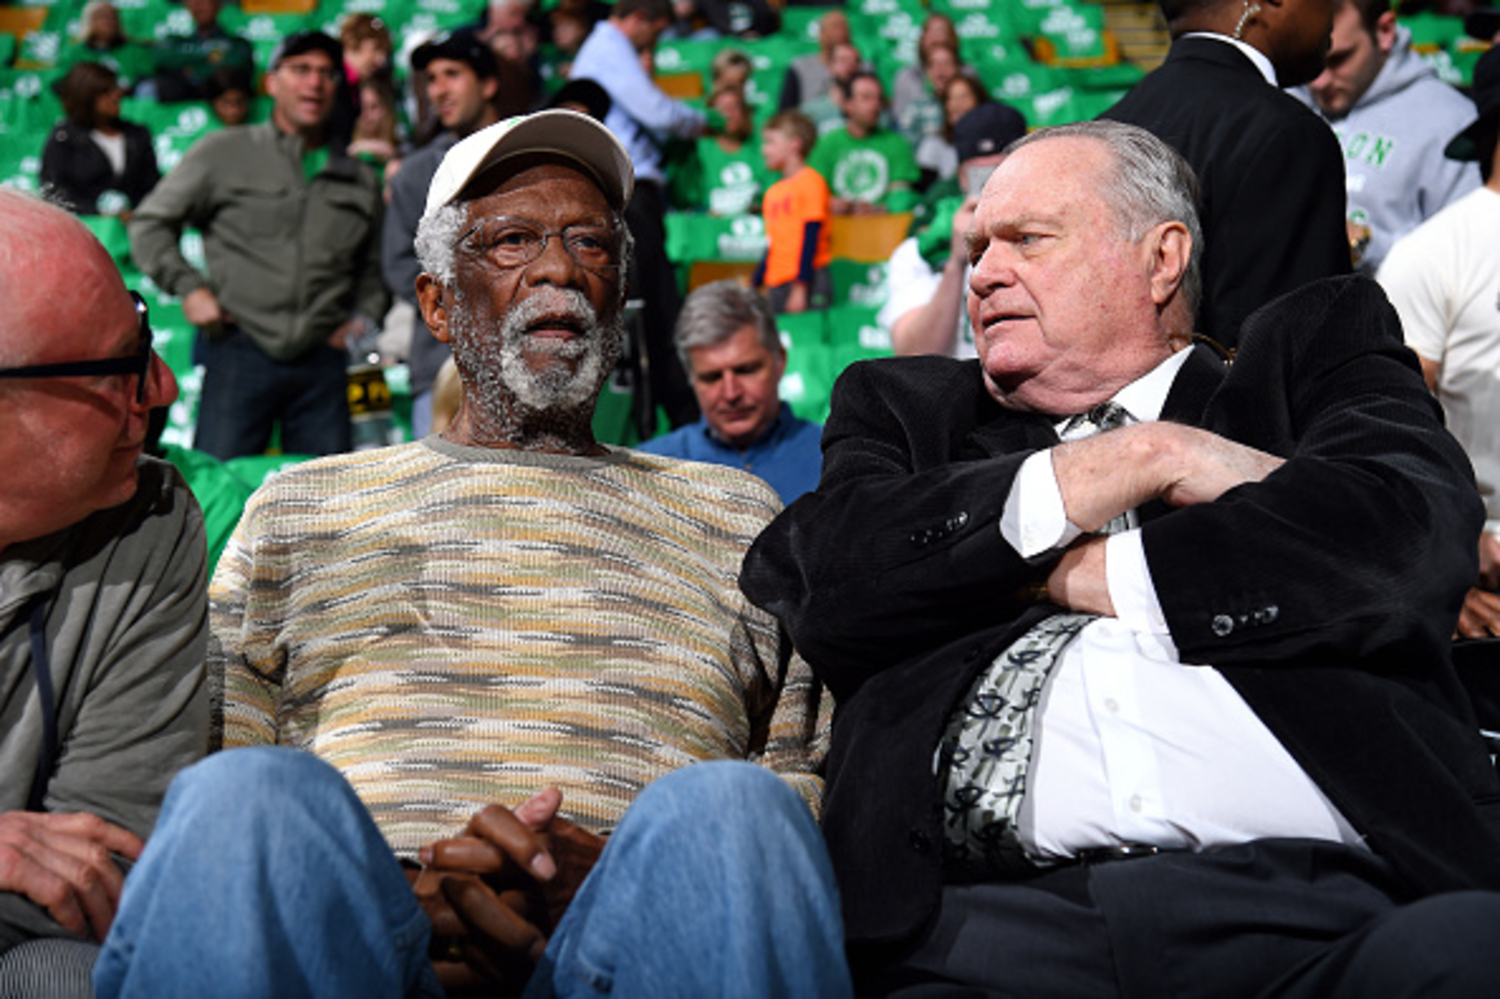 Bill Russell sent a special message to his former teammate who passed away